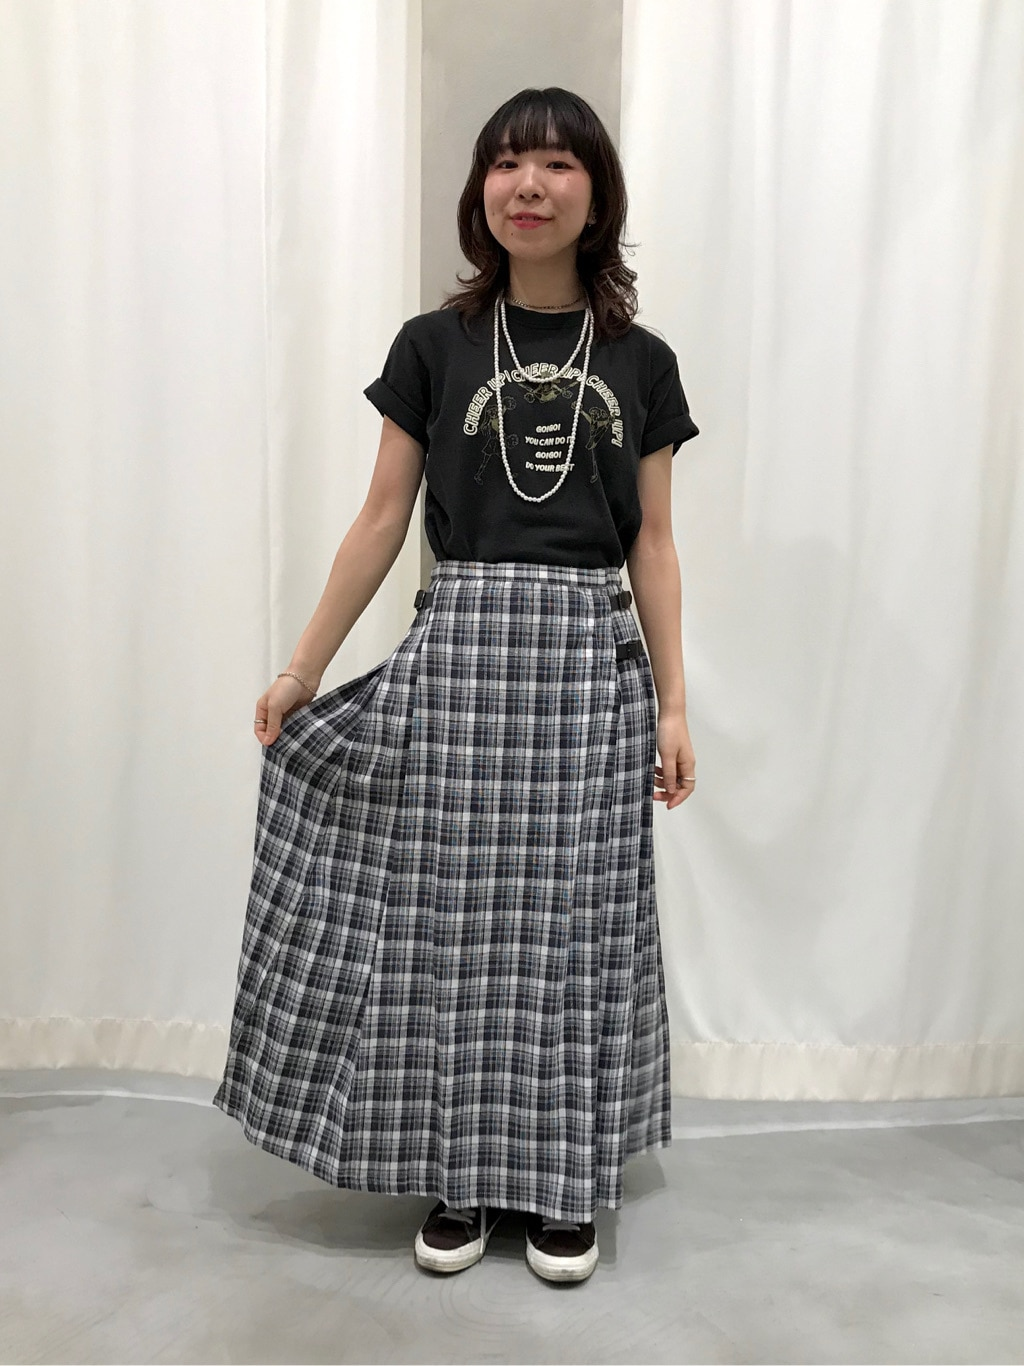 AMB SHOP PAR ICI CHILD WOMAN,PAR ICI ルミネ横浜 身長:154cm 2020.06.07